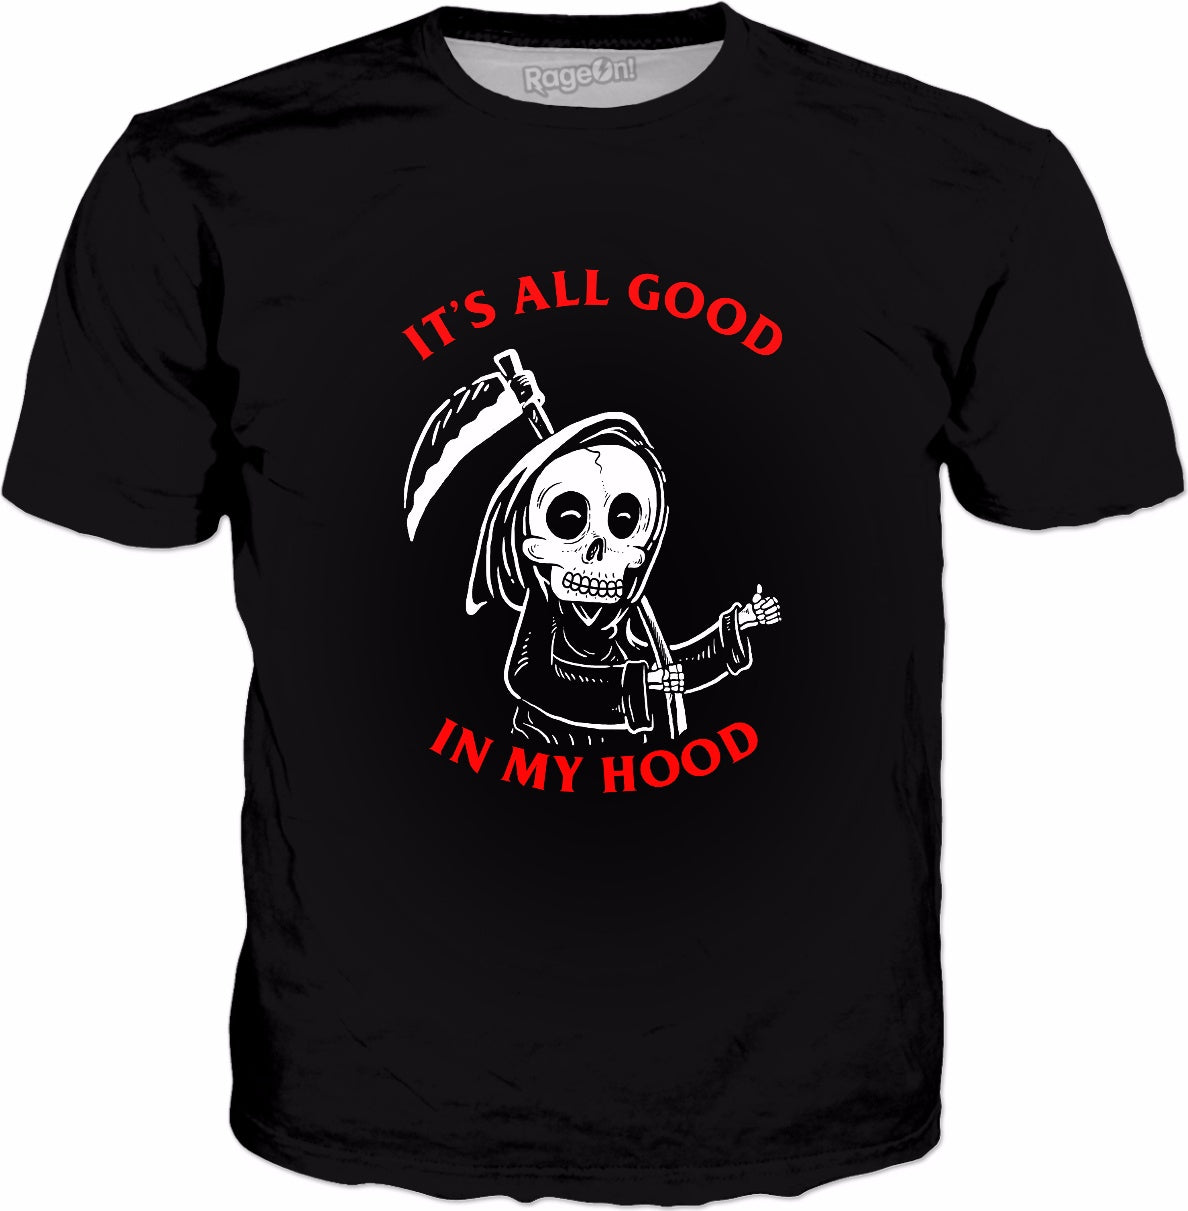 All Good In My Hood T-Shirt - Grim Reaper Funny Metal